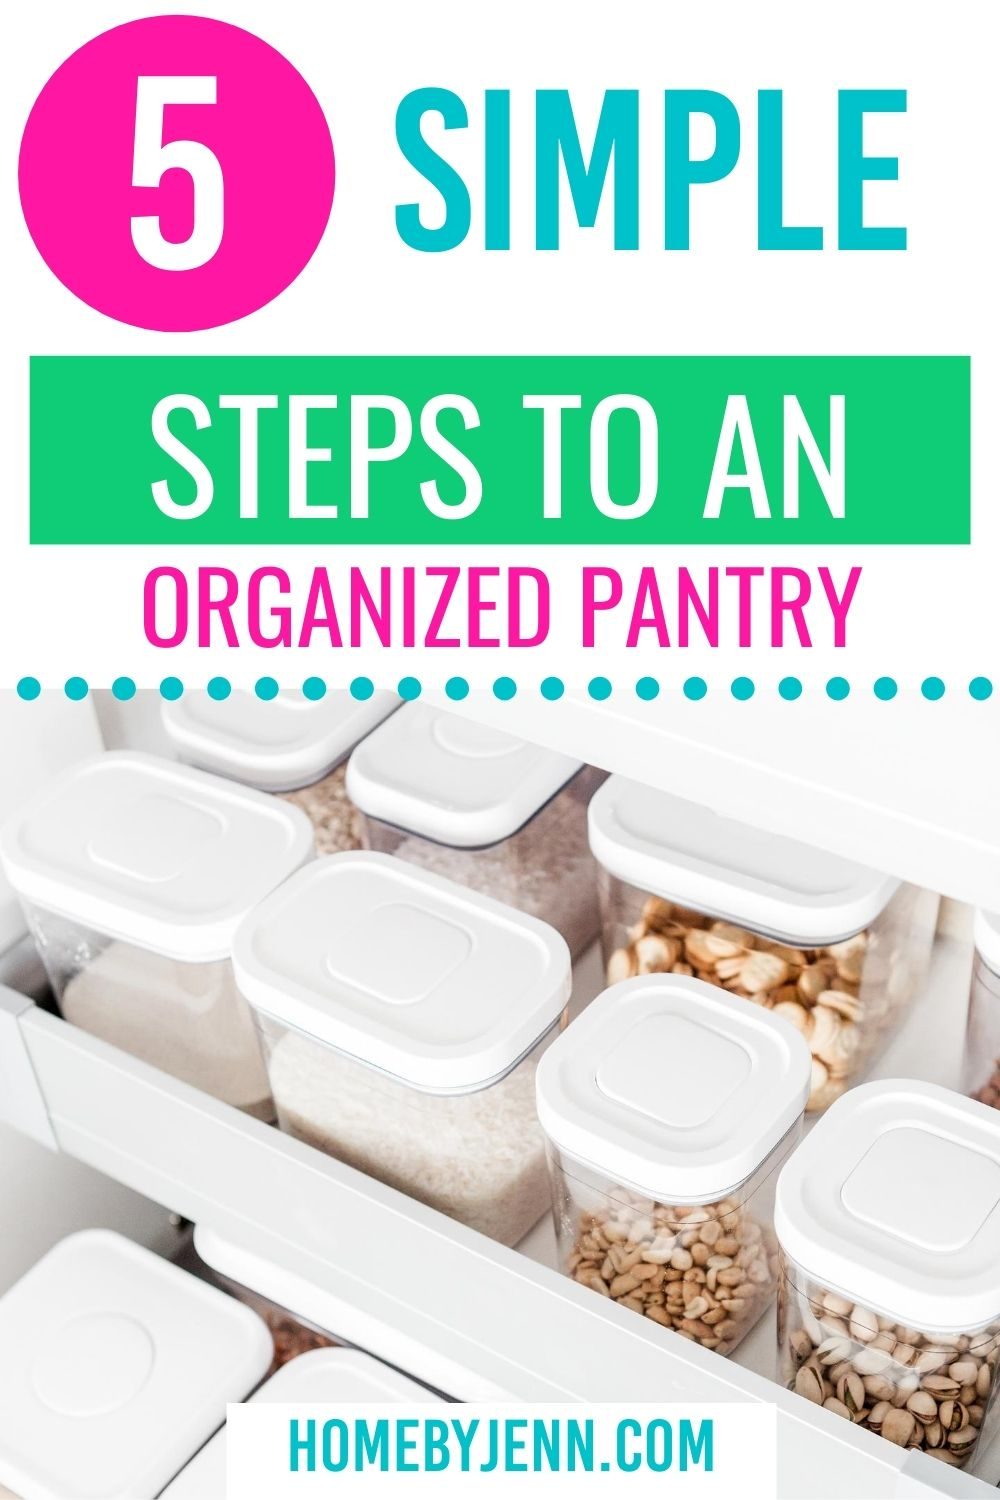 Organize your pantry in 5 simple steps. It is possible to keep your pantry clean and organized. #pantry #kitchenpantry #organize #organizedkitchen #kitchen #clean via @homebyjenn